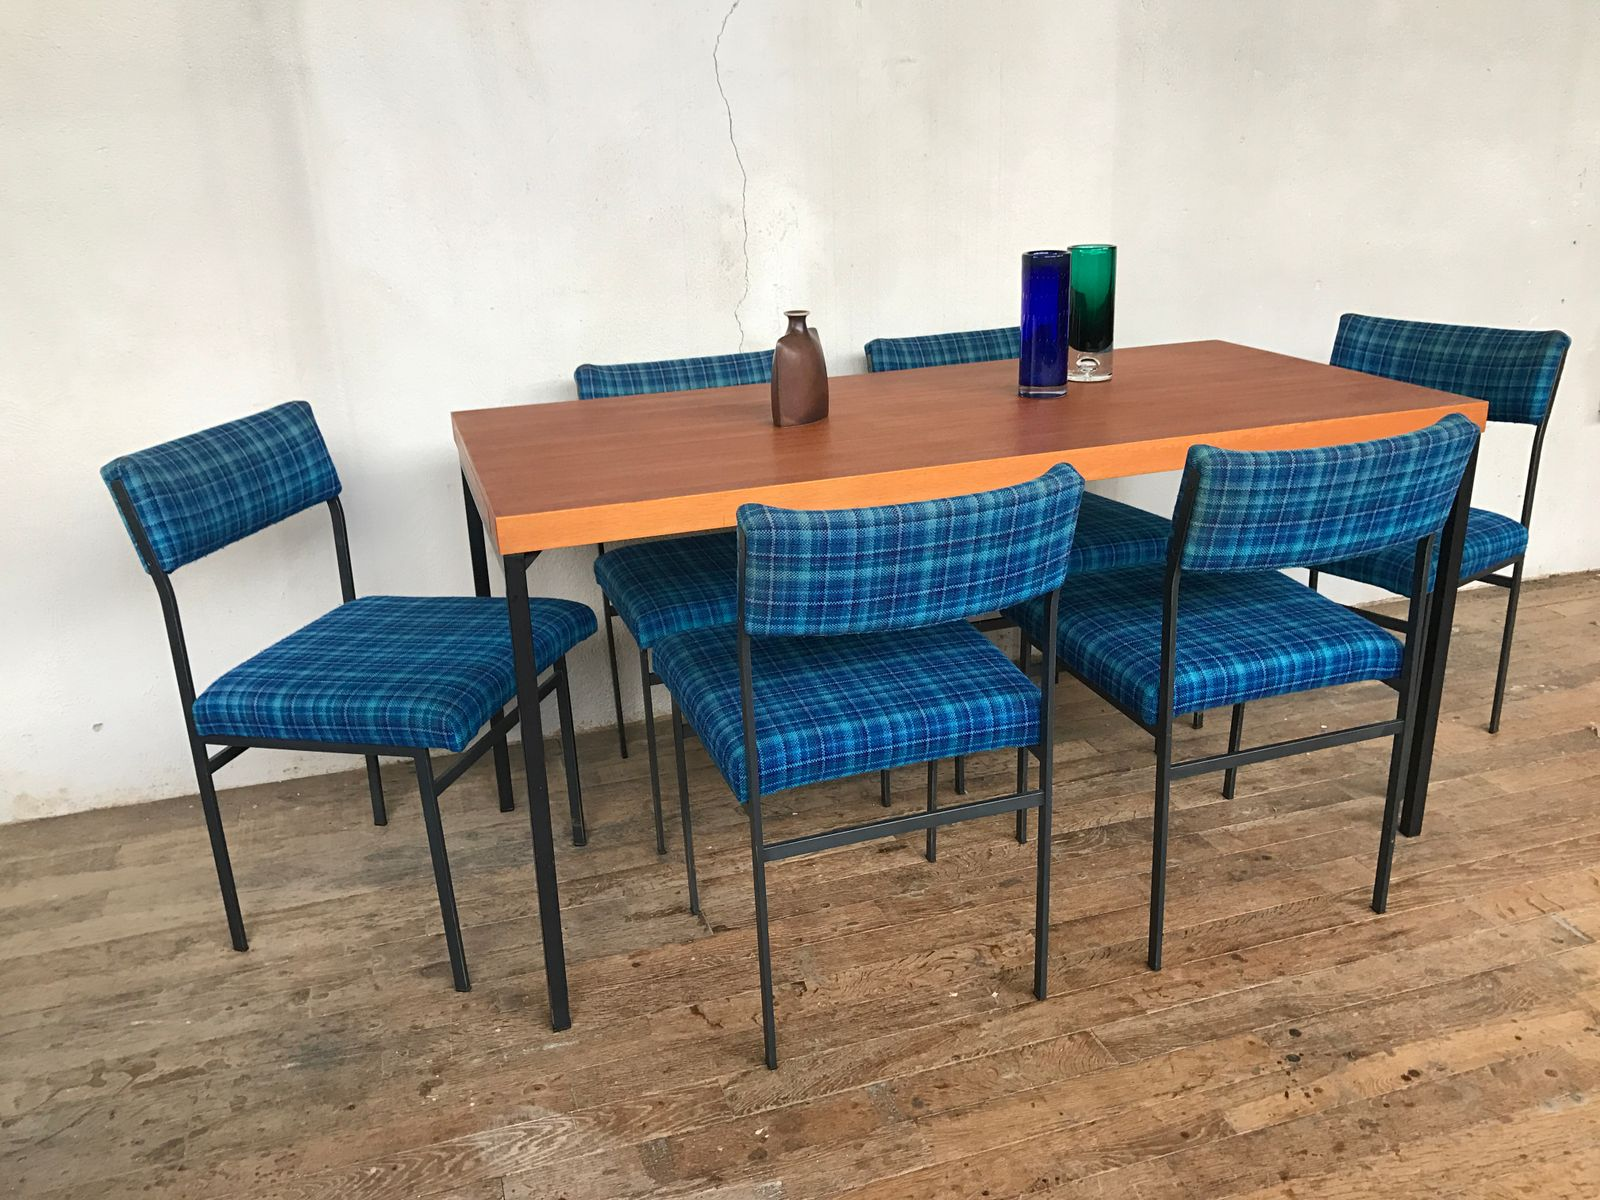 Marvelous Teak Dining Table By Dieter Wäckerlin For Behr With 6 Chairs, 1950s